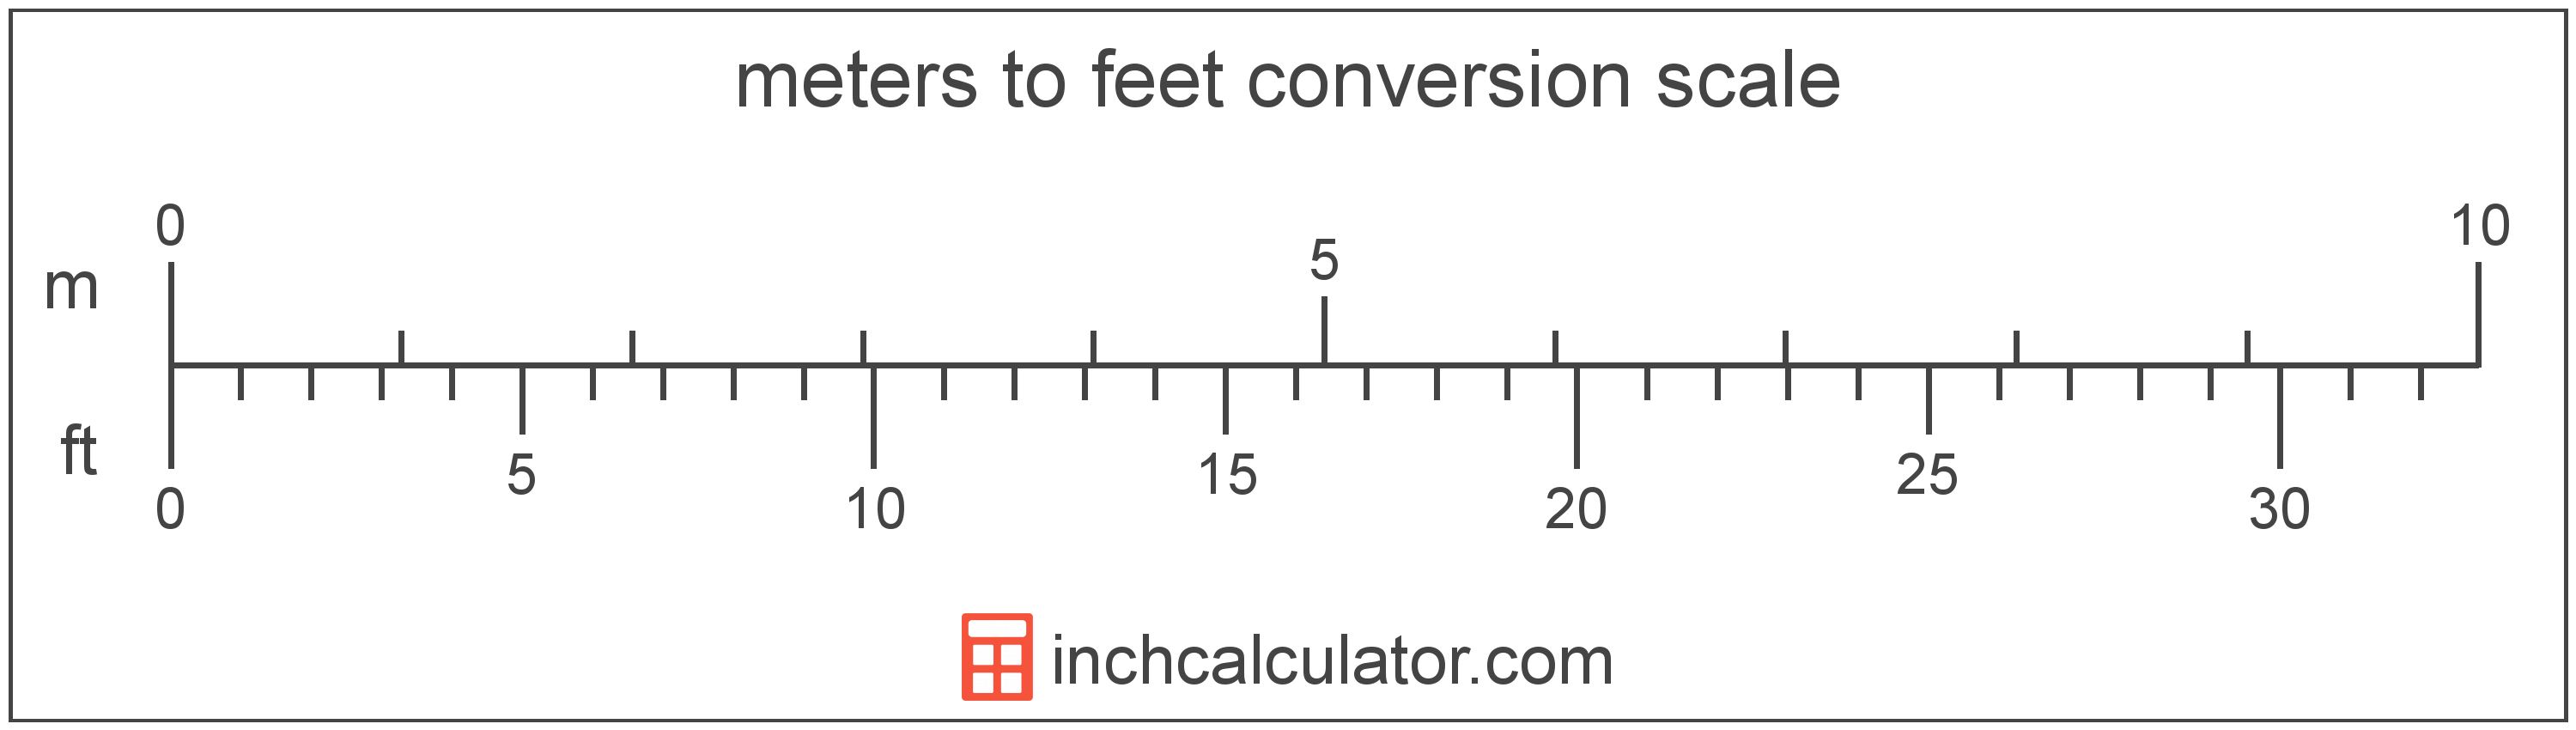 conversion scale showing meters and equivalent feet length values